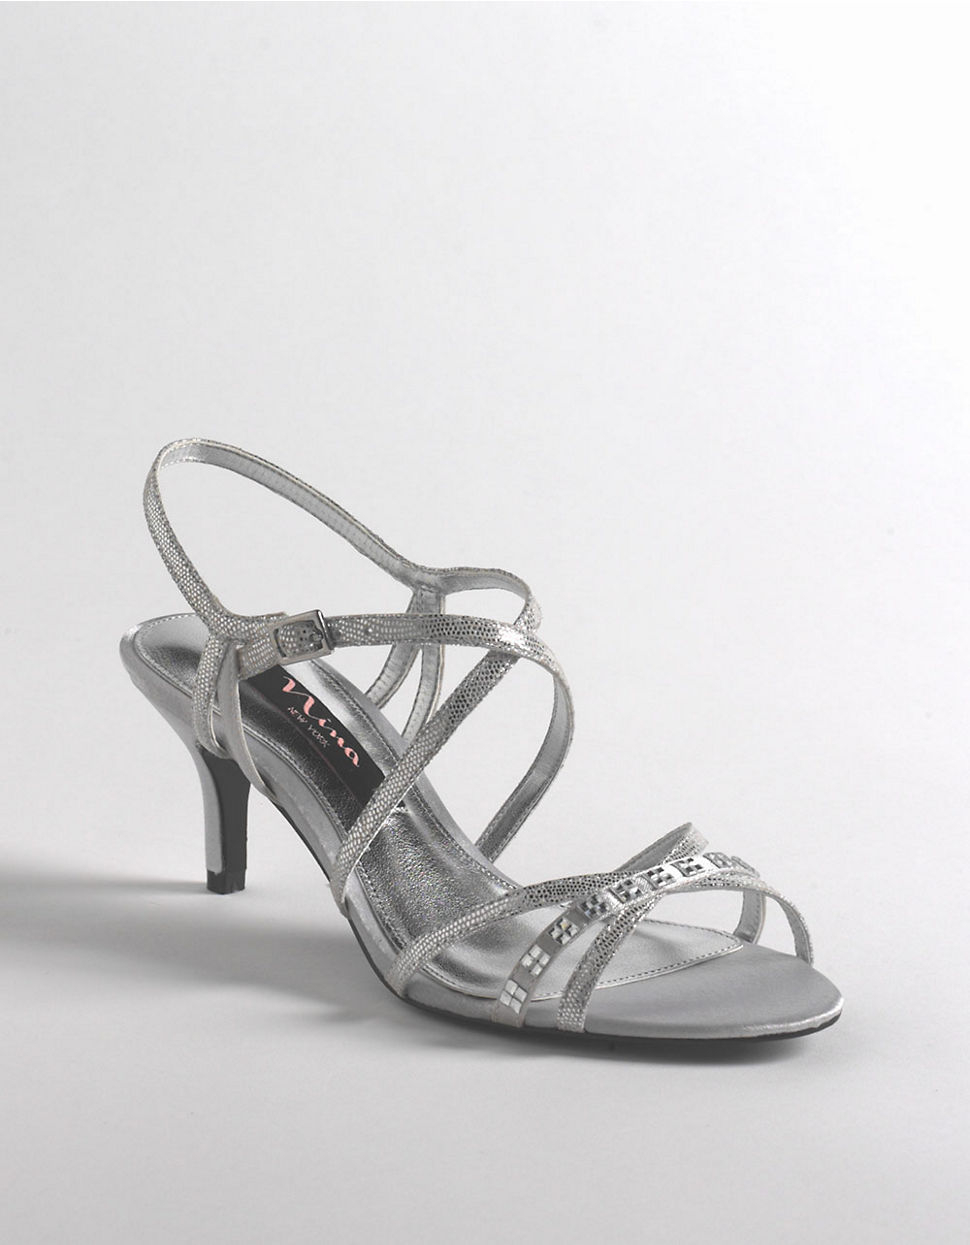 Nina Curran Strappy Leather Sandals In Silver Silver